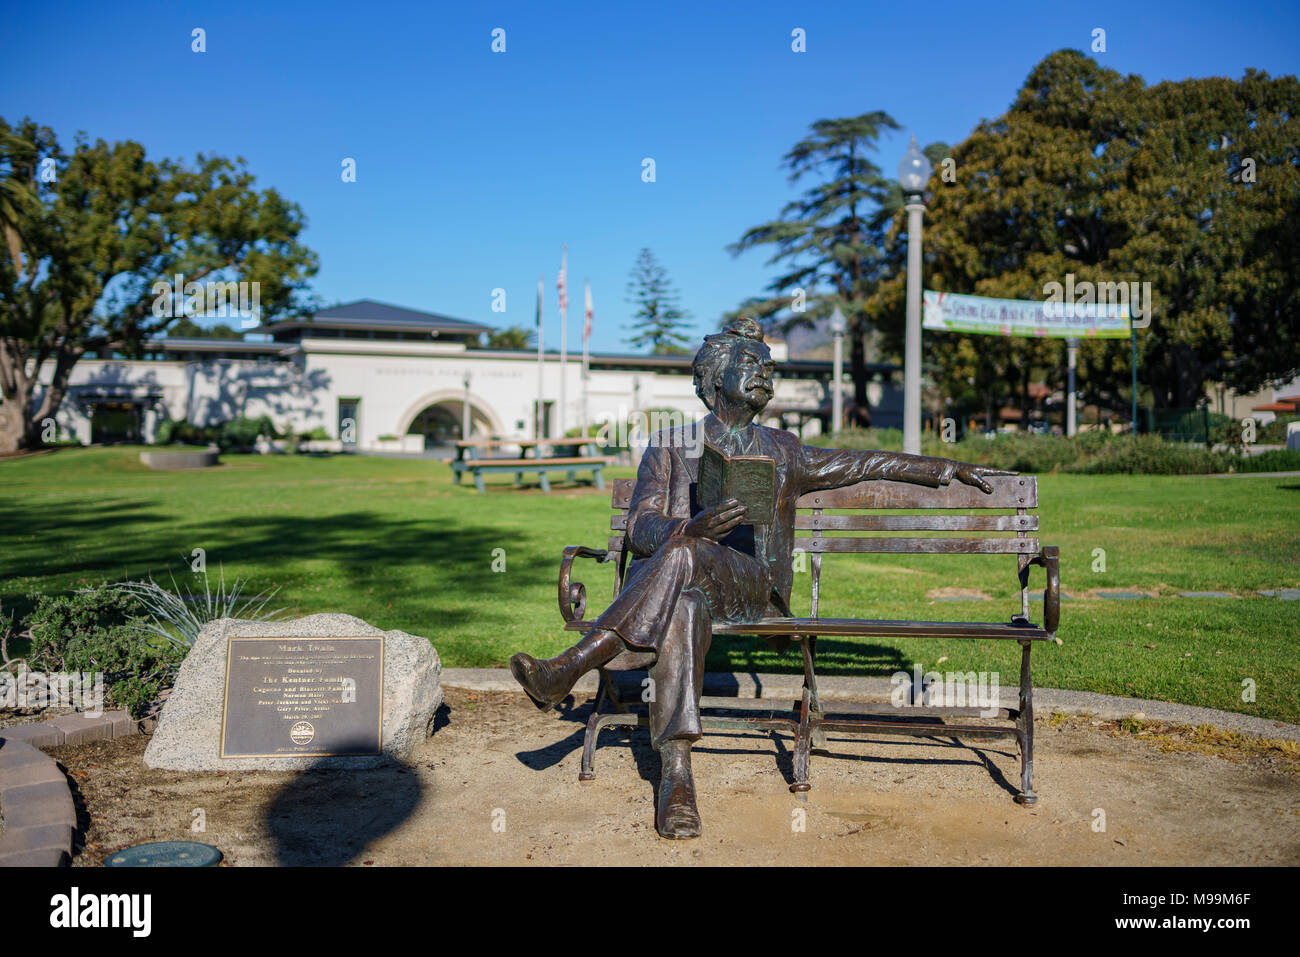 Monrovia, MAR 19: Exterior view of the Monrovia Library and Mark Twain statue on MAR 19, 2018 at Los Angeles County, California - Stock Image